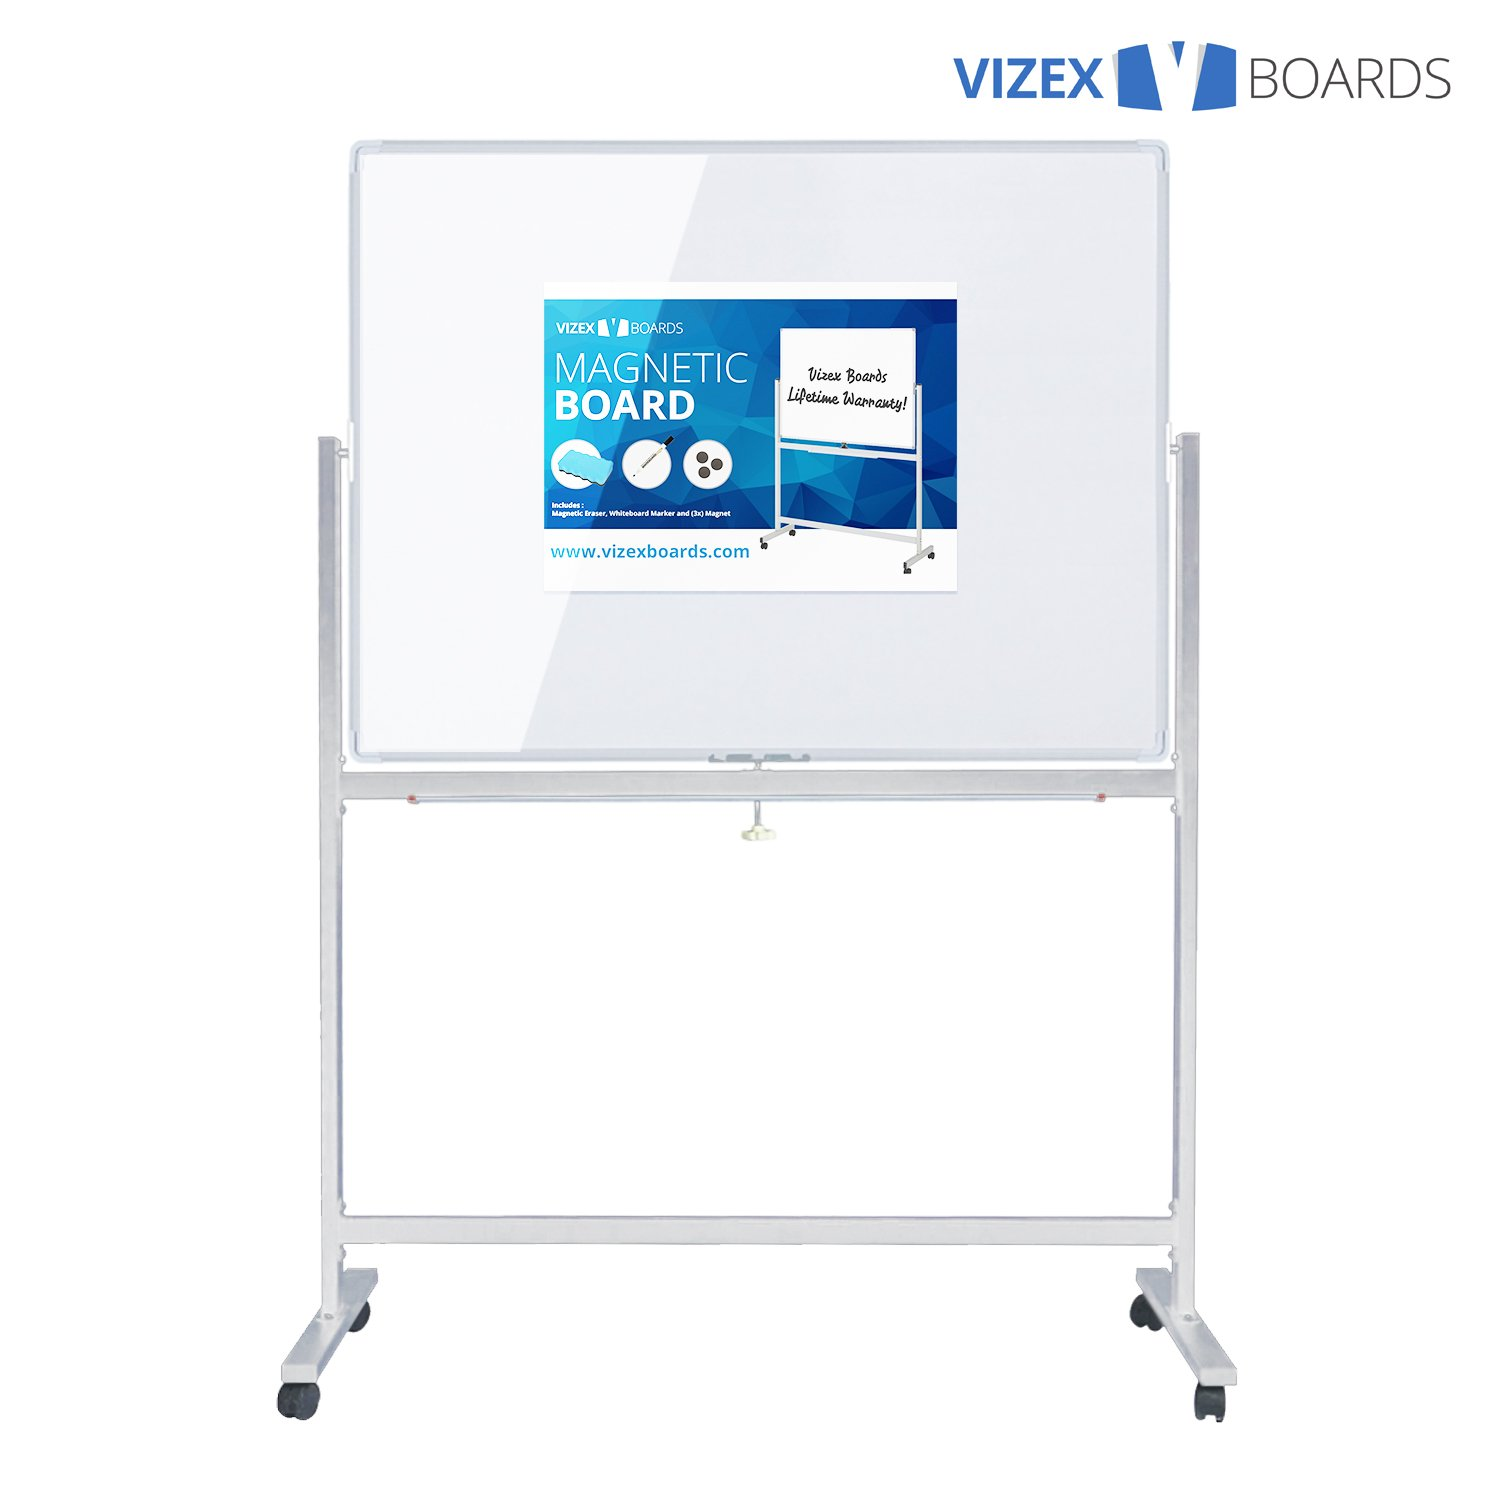 Vizex Magnetic Dry Erase Board with Stand (48'' x 36'' Whiteboard with Stand)